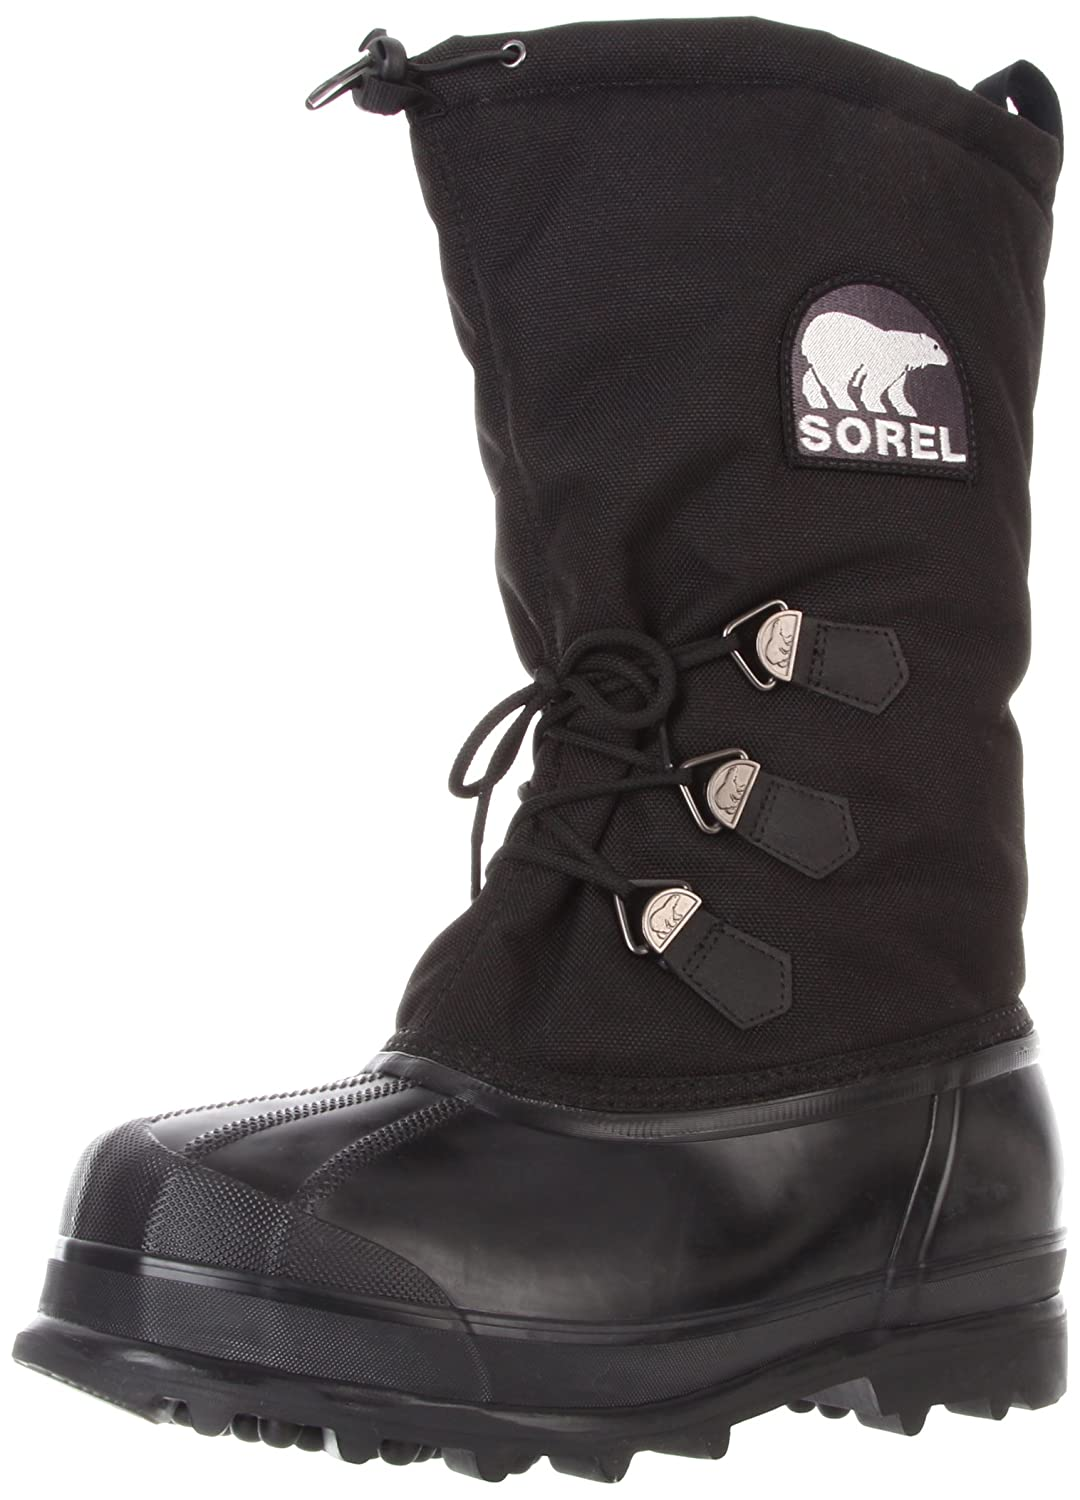 Sorel Men's Glacier NM1042 Boot,Black,9 M